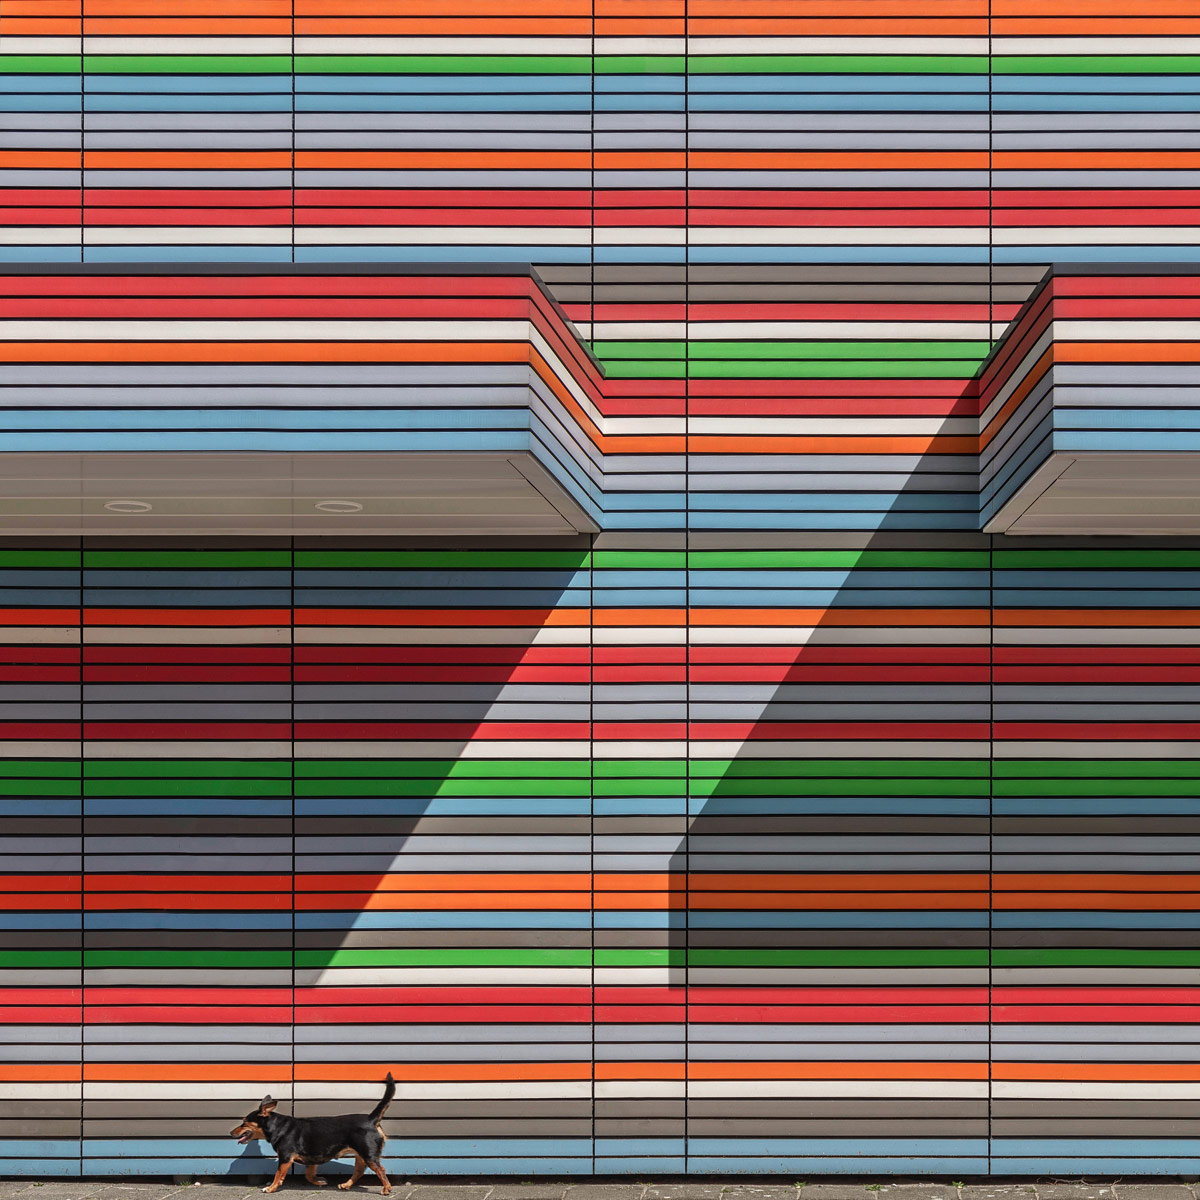 1st Place Abstract, © Paul Brouns, Netherlands, Walking the Line, Chromatic Awards - International Color Photography Contest